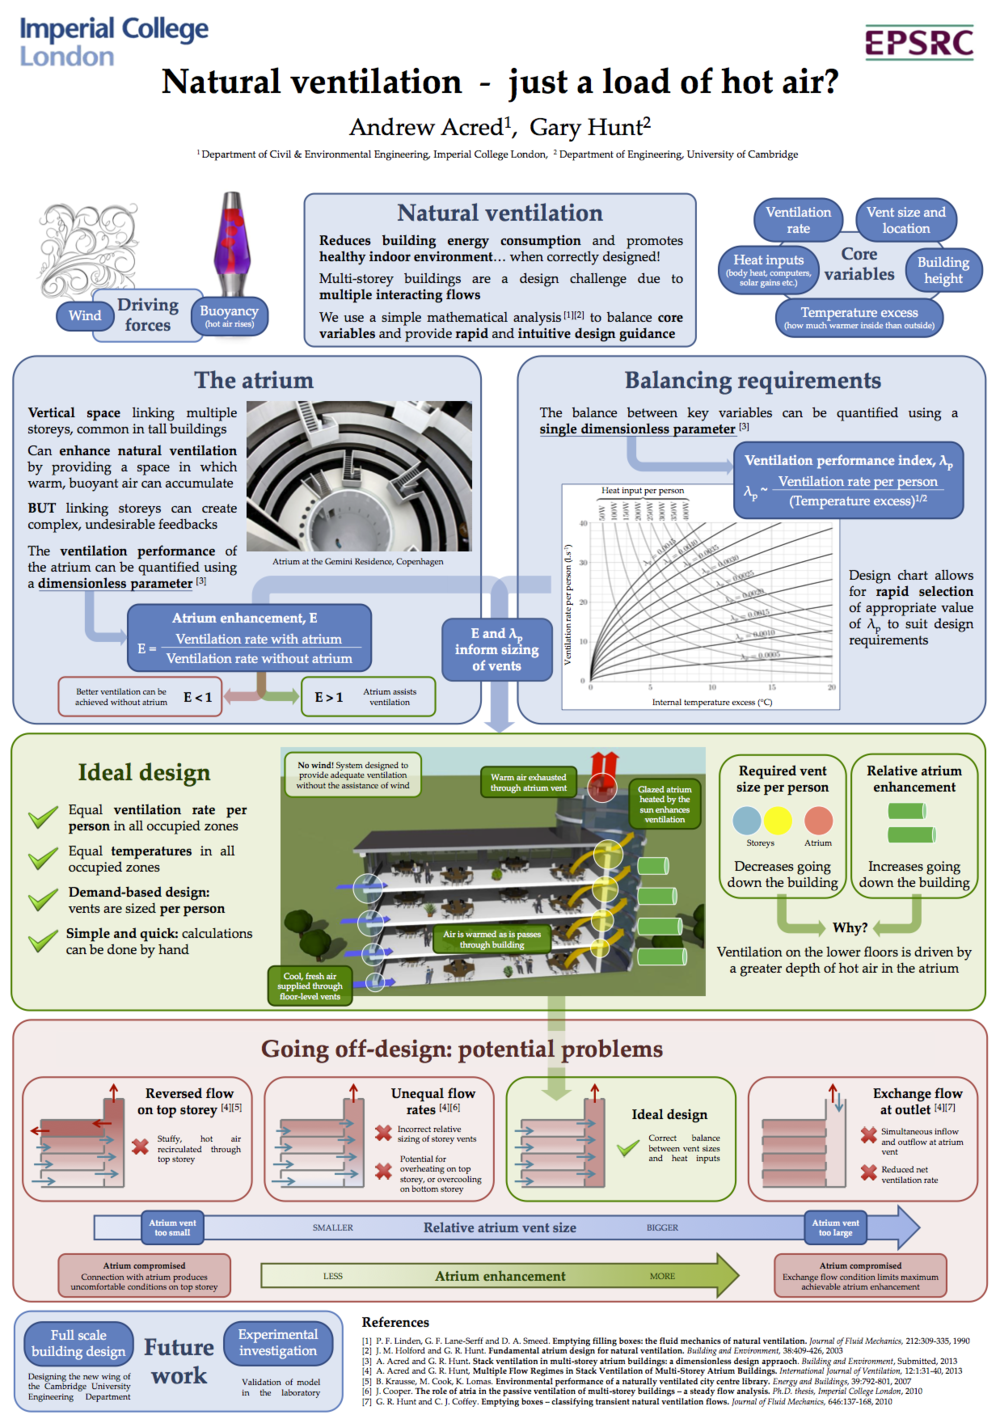 Natural ventilation - just a load of hot air? Imperial College London Ph.D. poster competition, 2013. Awarded 3rd prize.